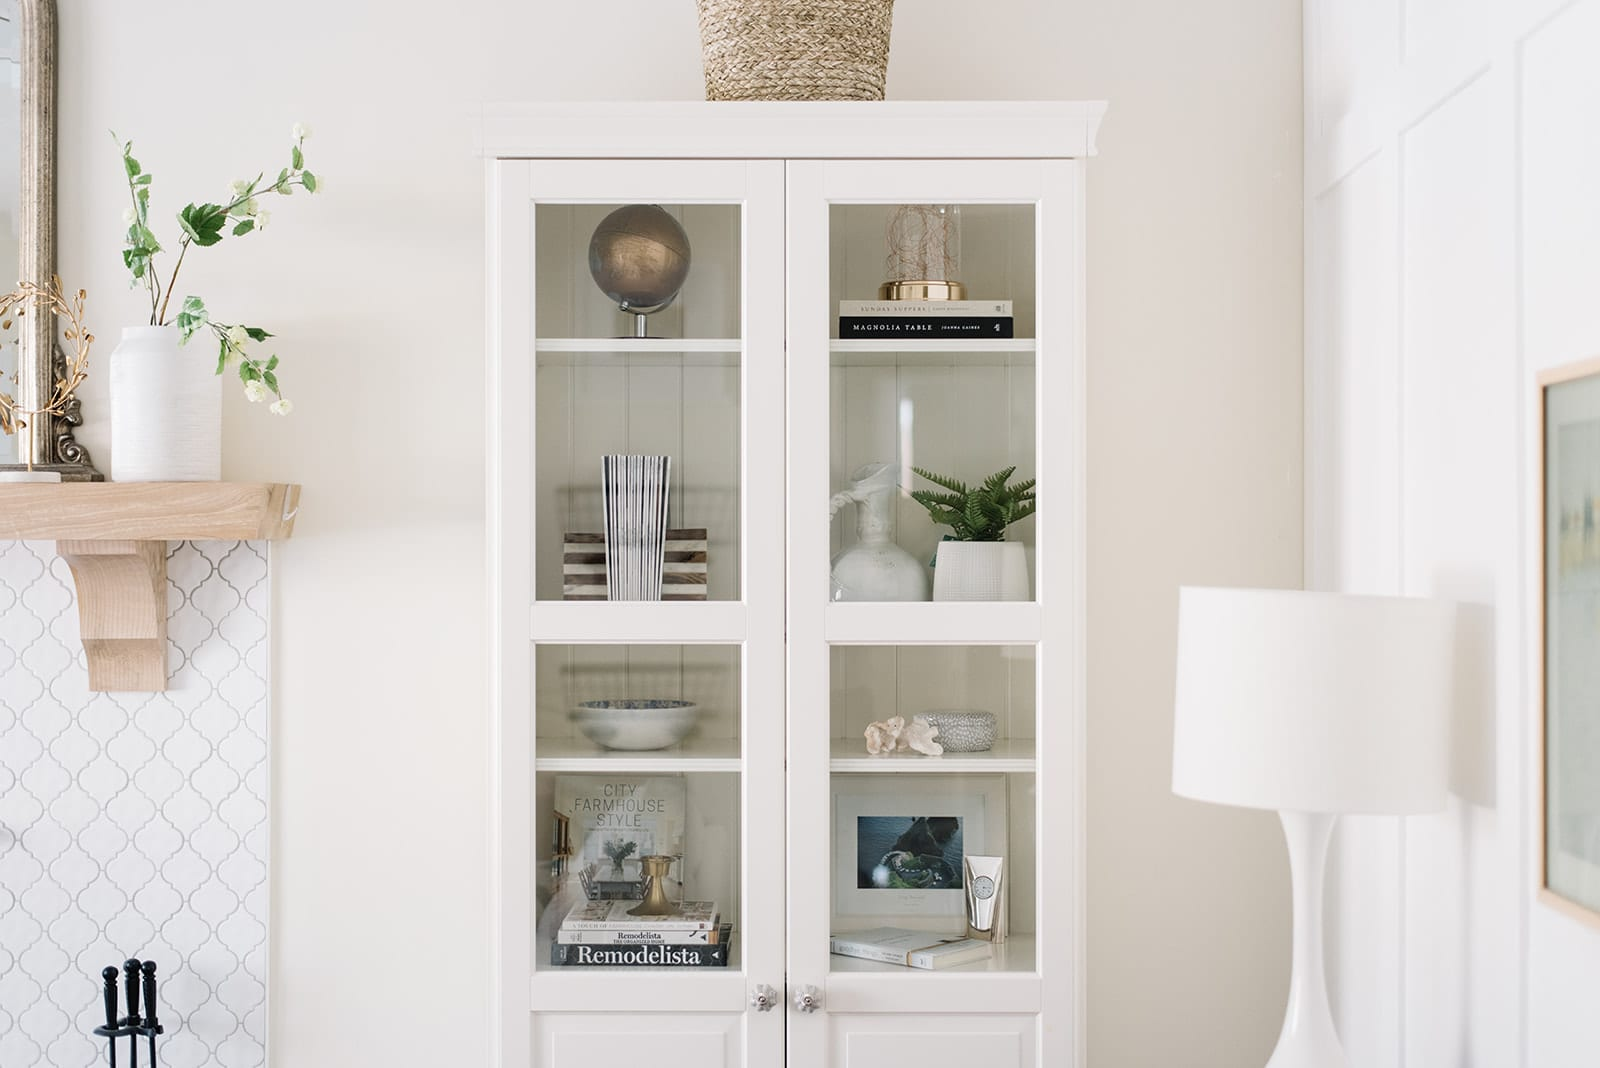 How to style a bookshelf, built-in or open shelving